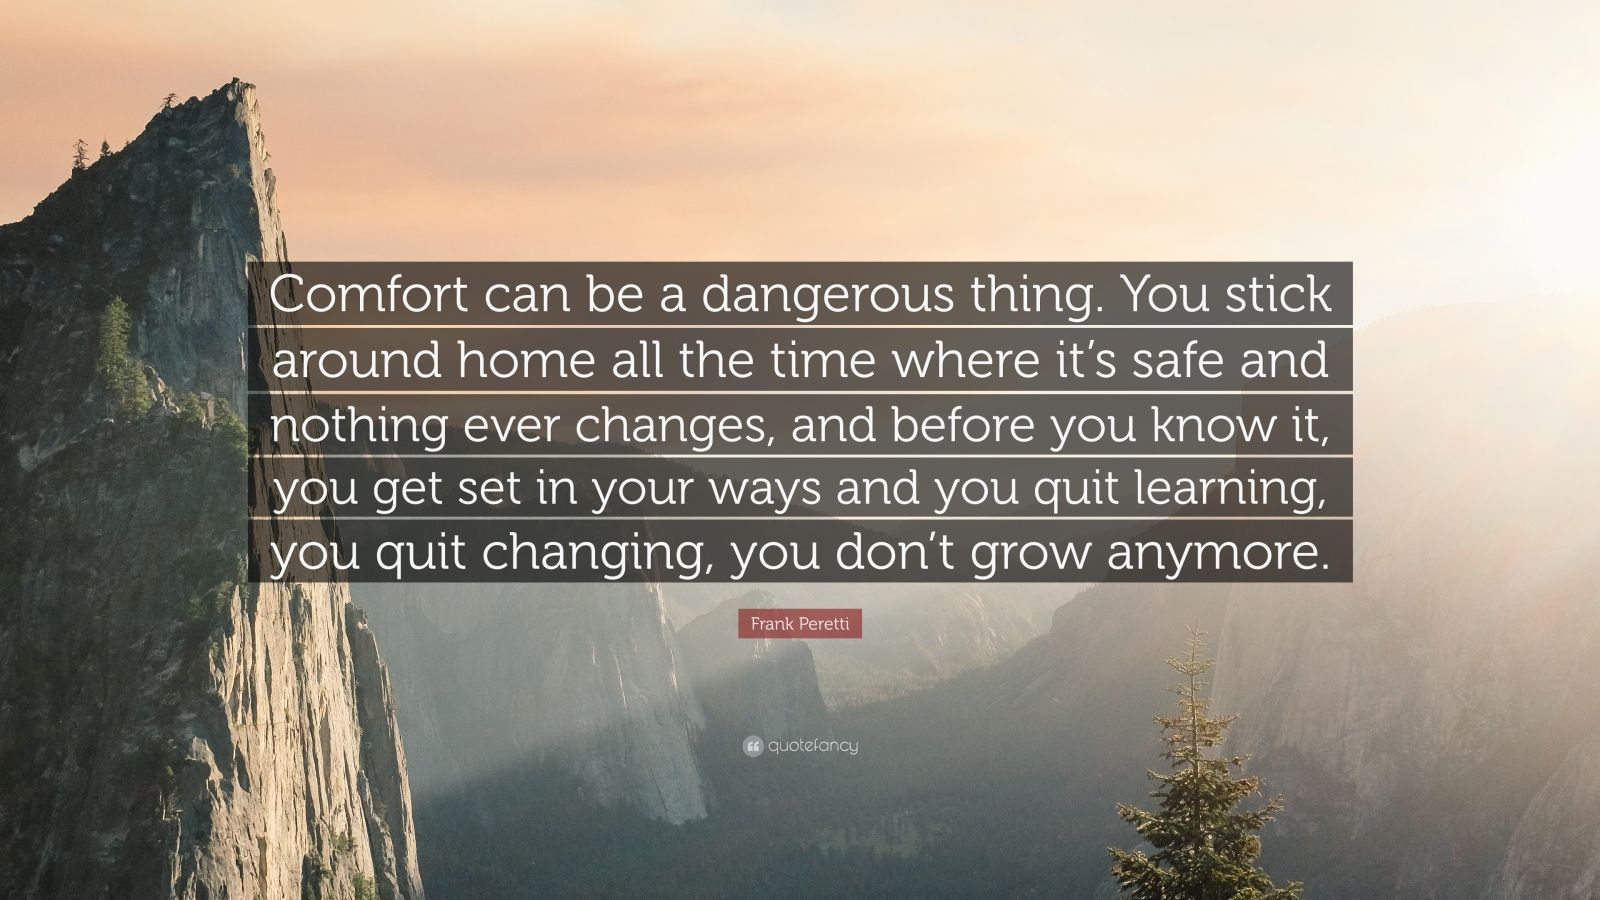 """Frank Peretti Quote: """"Comfort can be a dangerous thing. You stick around home all the time where it's safe and nothing ever changes, and before you know it, you get set in your ways and you quit learning, you quit changing, you don't grow anymore."""""""